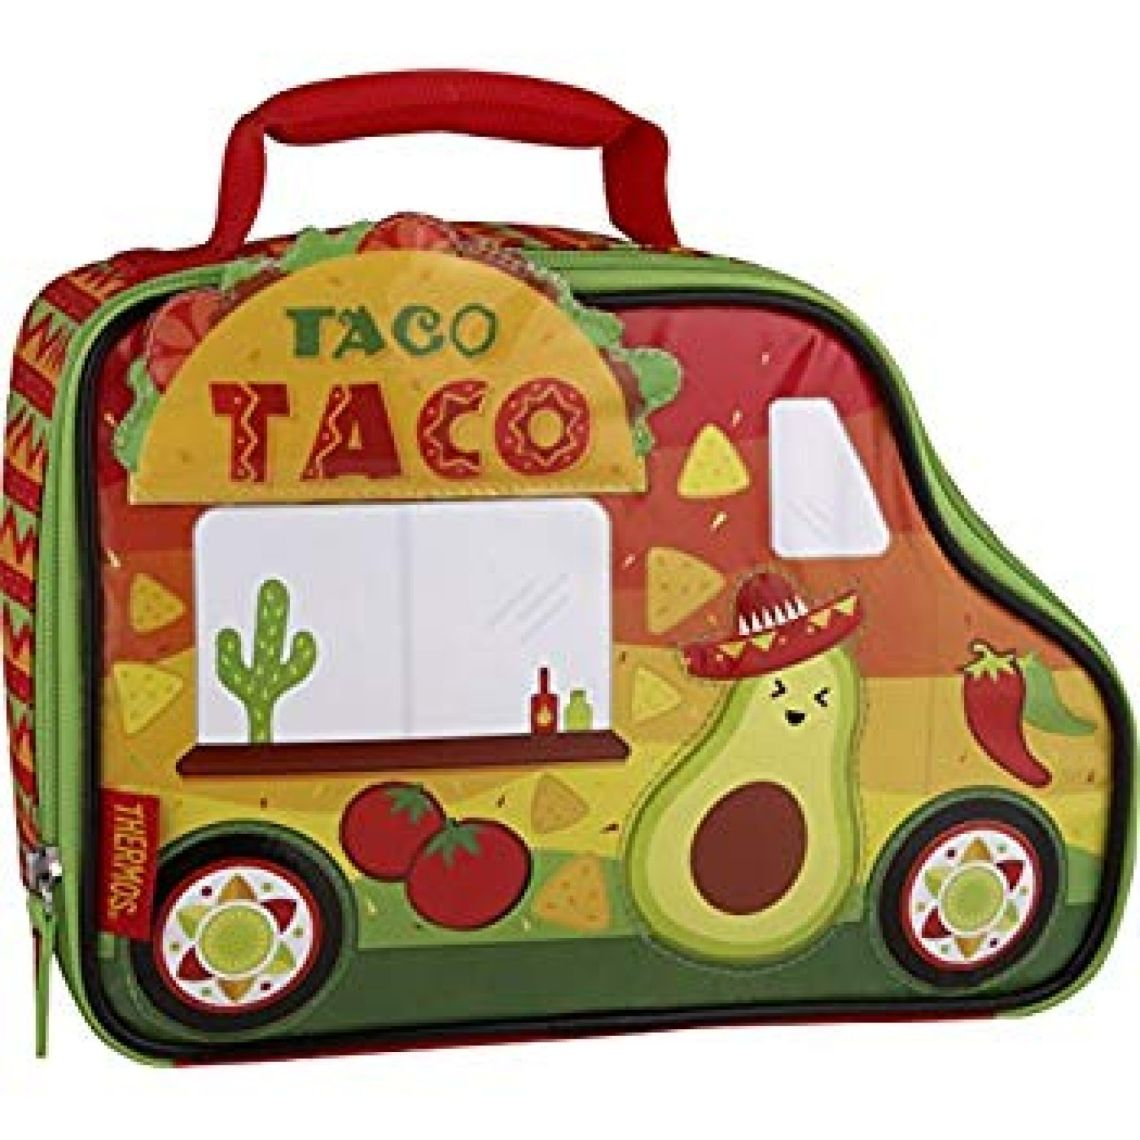 Amazon.com: Thermos Novelty Lunch Kit, Cars & Trucks - Taco Truck: Kitchen & Dining